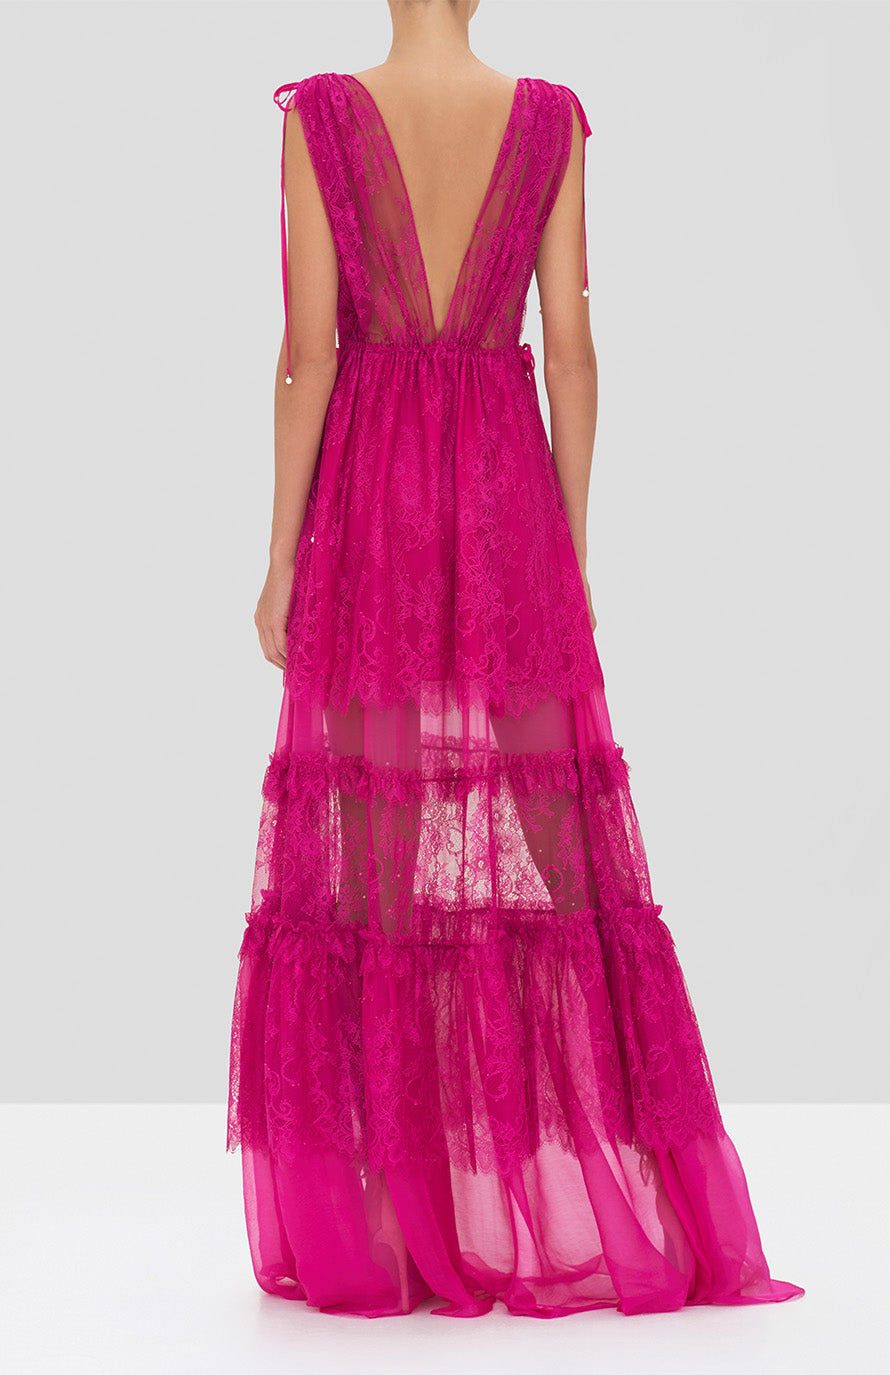 Alexis Umbria Dress in Fuchsia from the Holiday 2019 Ready To Wear Collection - Rear View